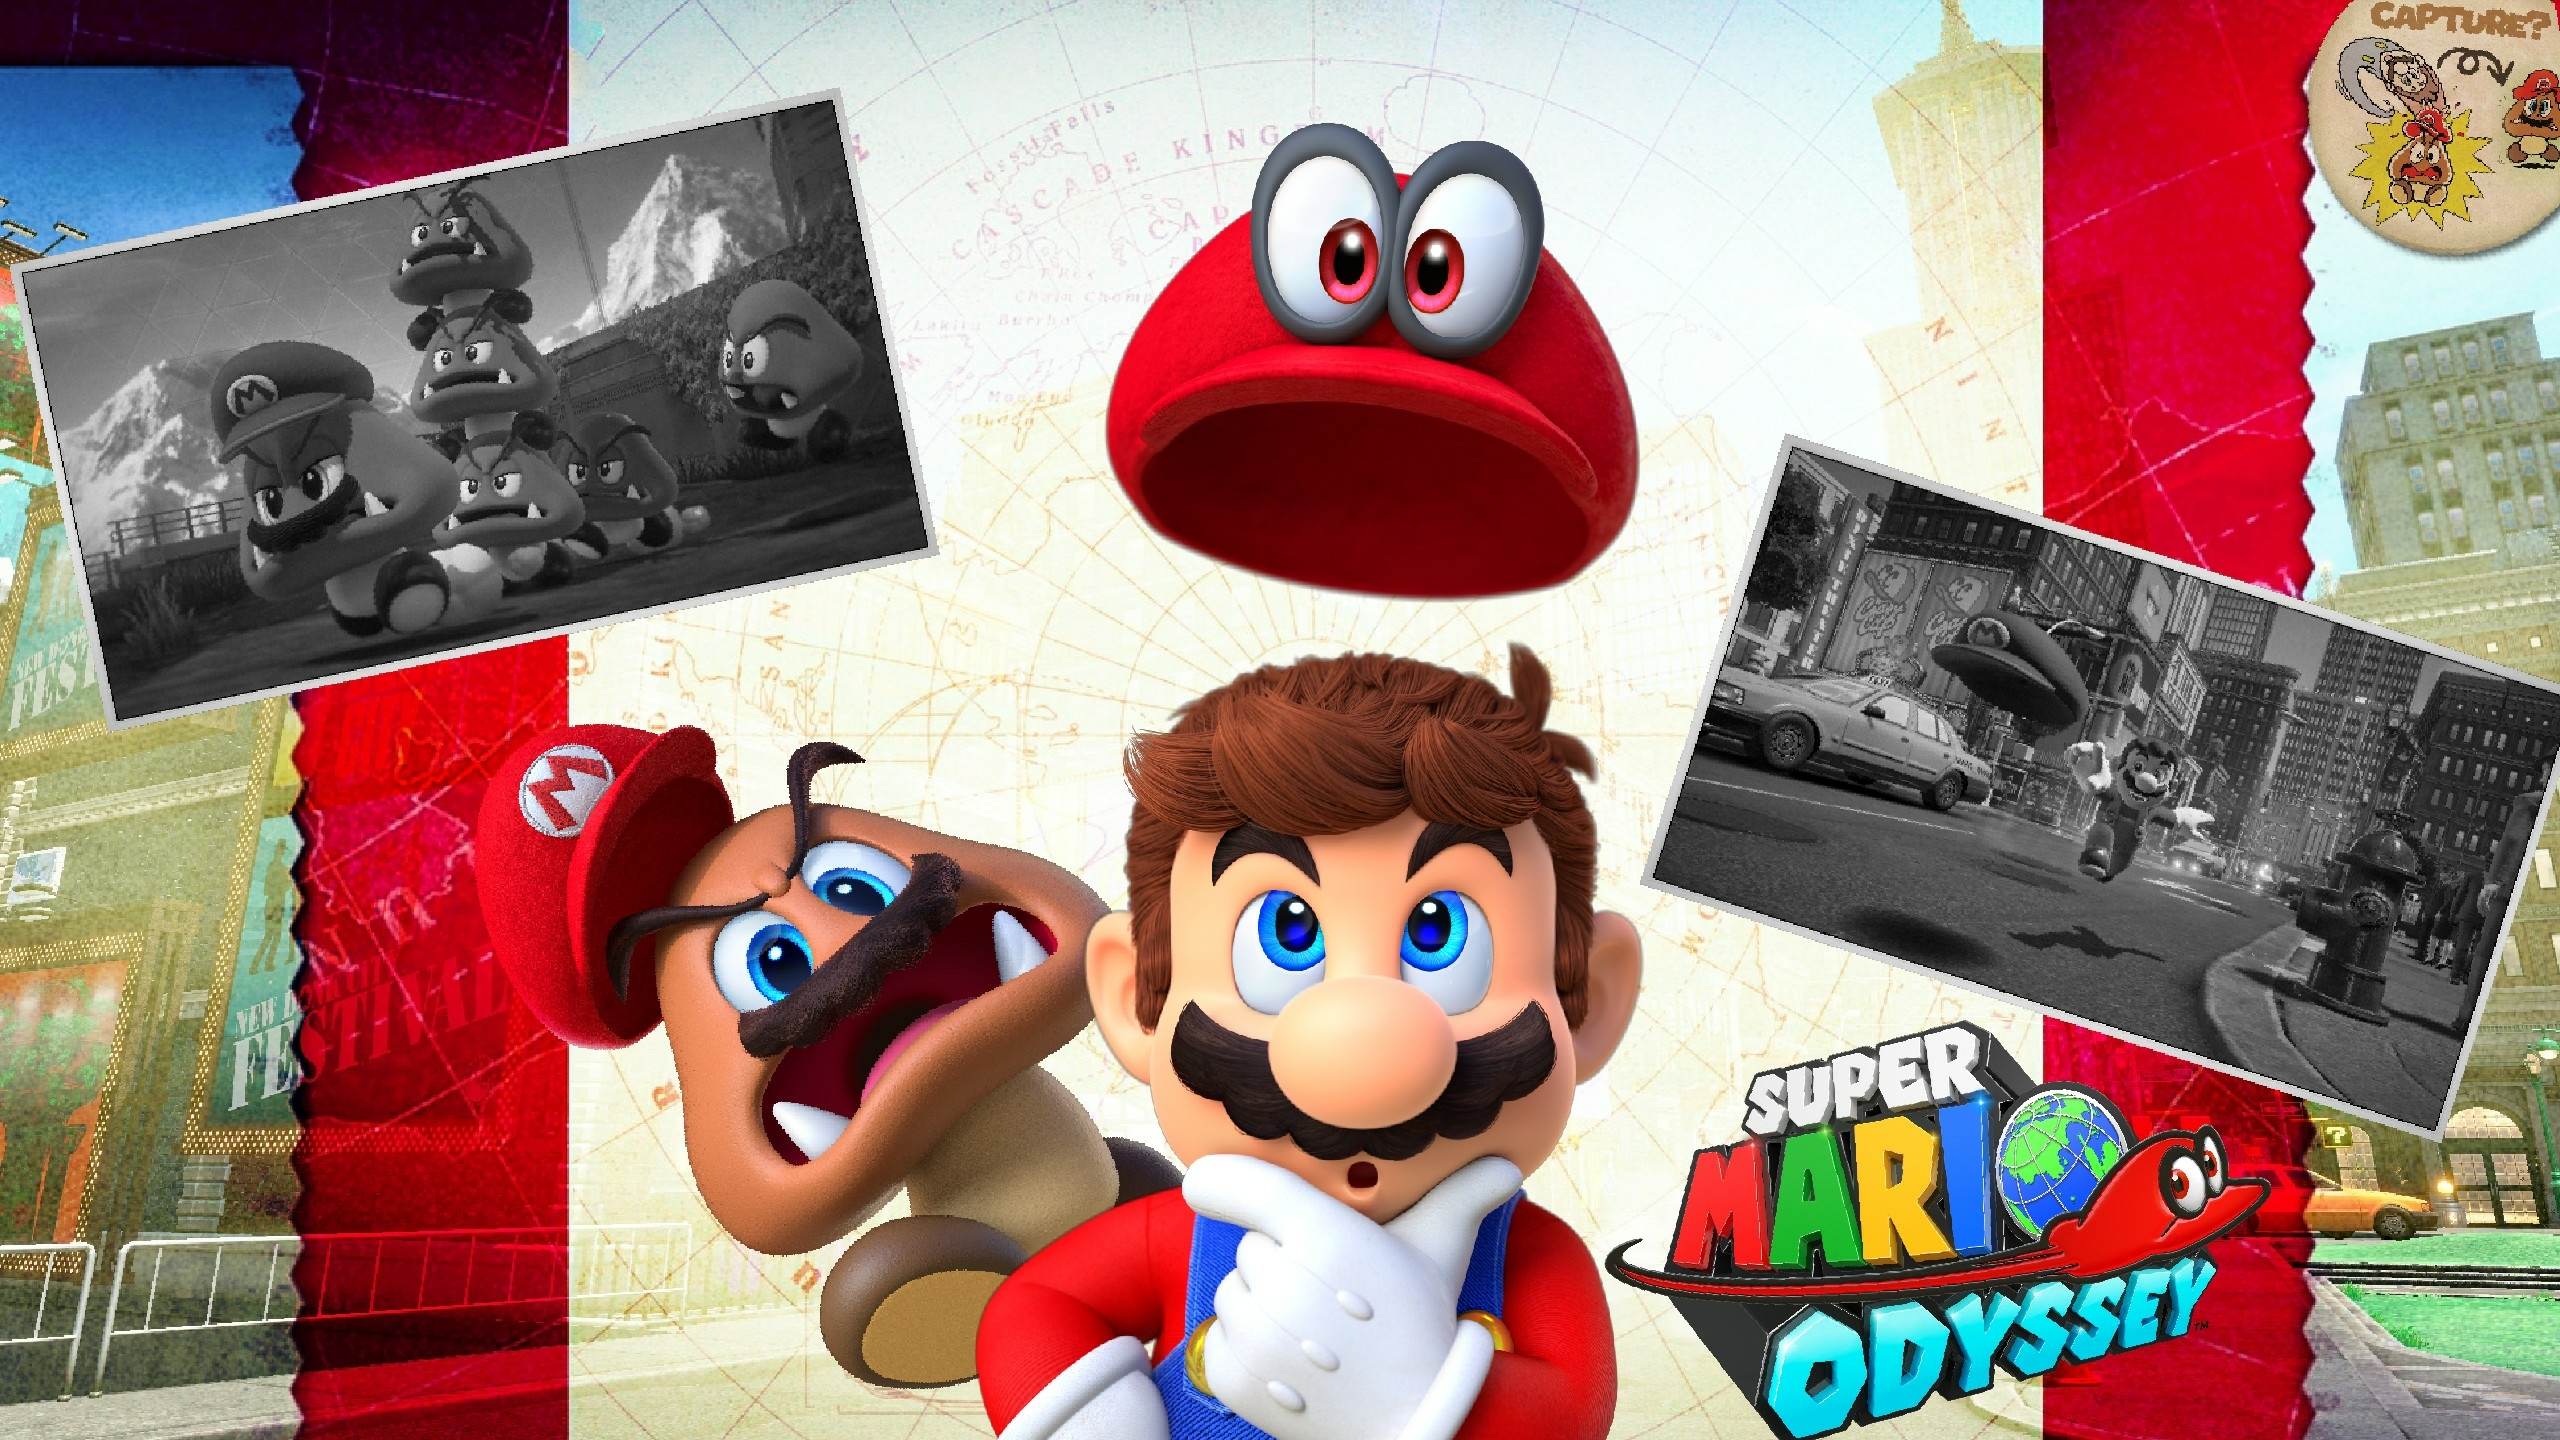 Super Mario Odyssey Wallpaper 2 By Dakidgaming On Deviantart